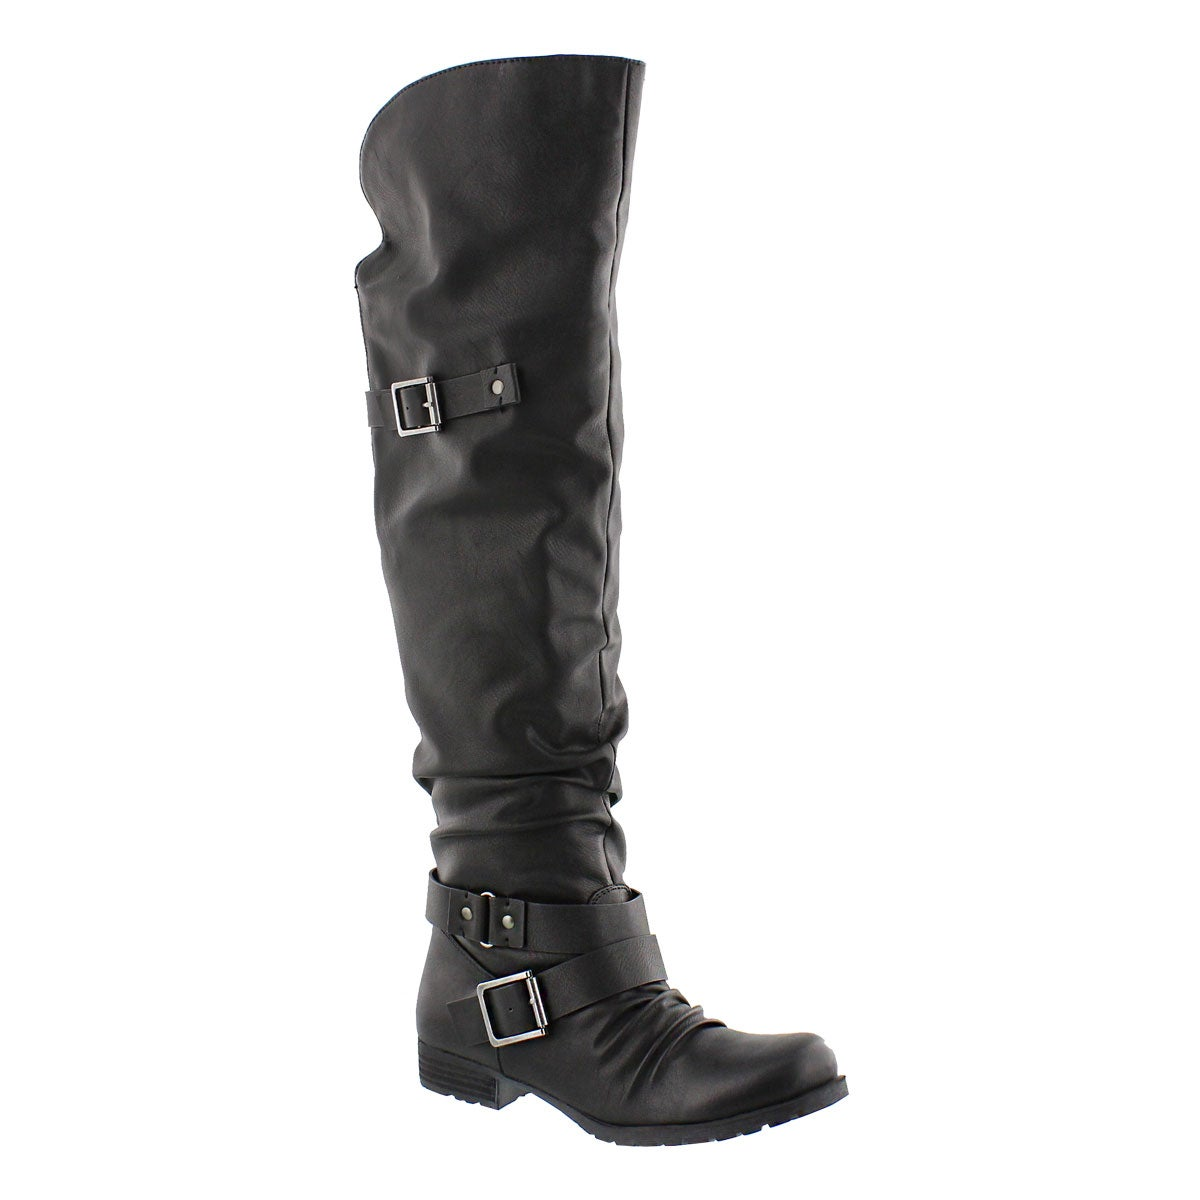 Lds Braelynn black over the knee boot